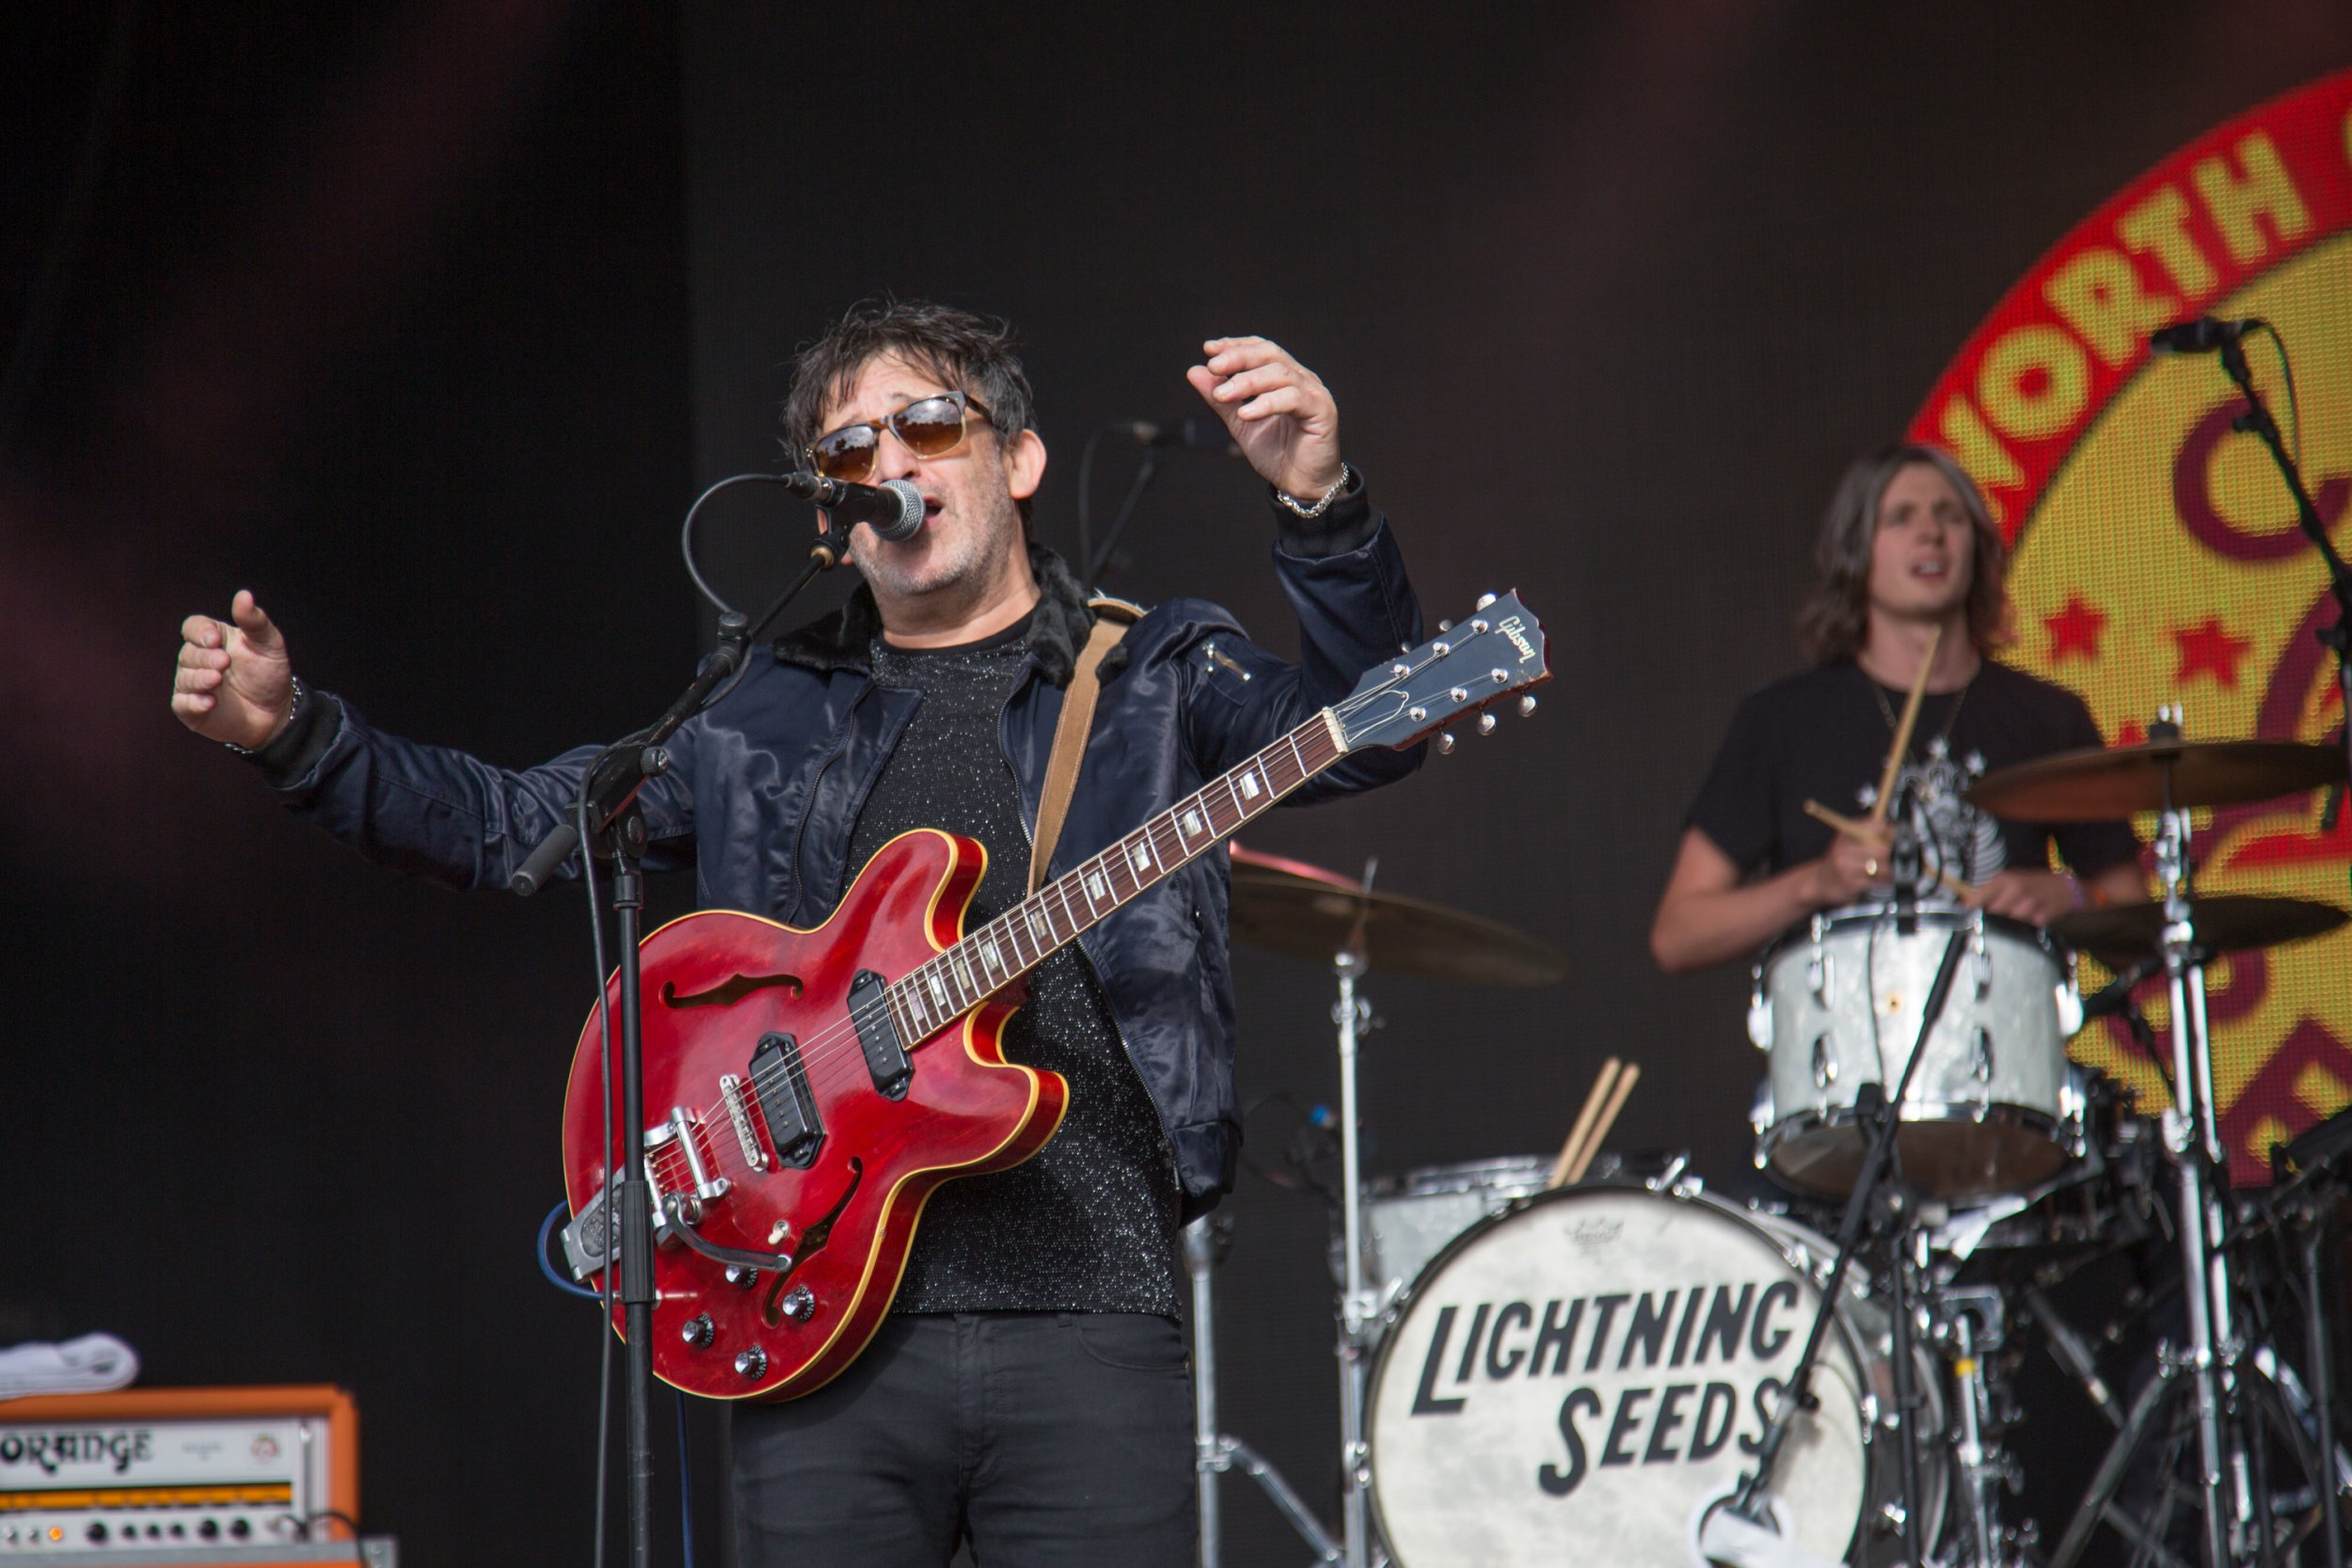 SUNNISIDE LIVE - WAREHAM, ENGLAND - JULY 30: Ian Broudie from The Lightning Seeds performs during Camp bestival Festival at Lulworth Castle on July 30, 2017 in Wareham, England. (Photo by Rob Ball/Getty Images)